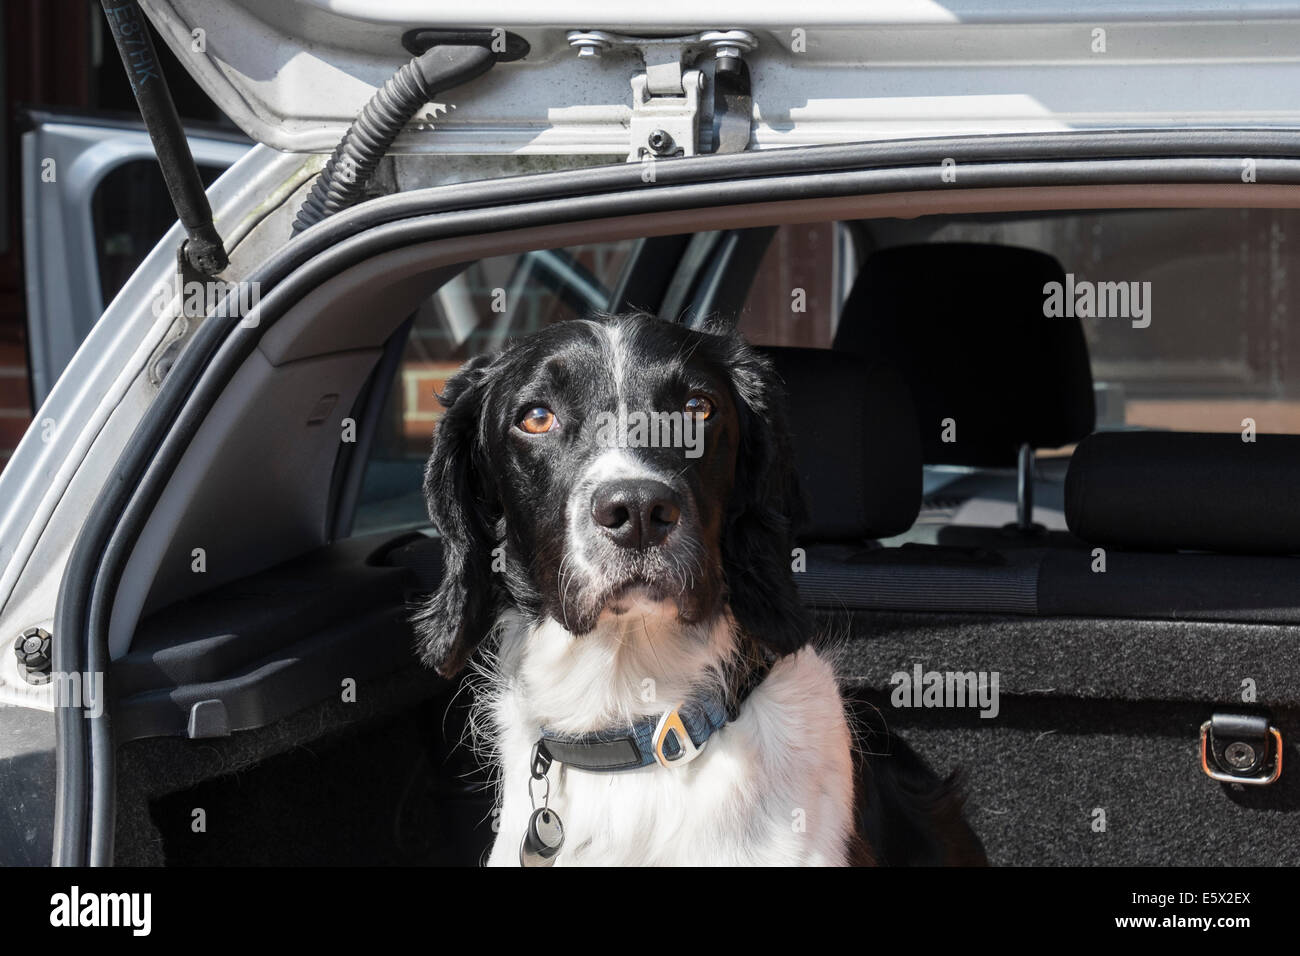 An adult English Springer Spaniel dog sitting waiting to go on a journey in a hatchback car boot with tailgate door - Stock Image